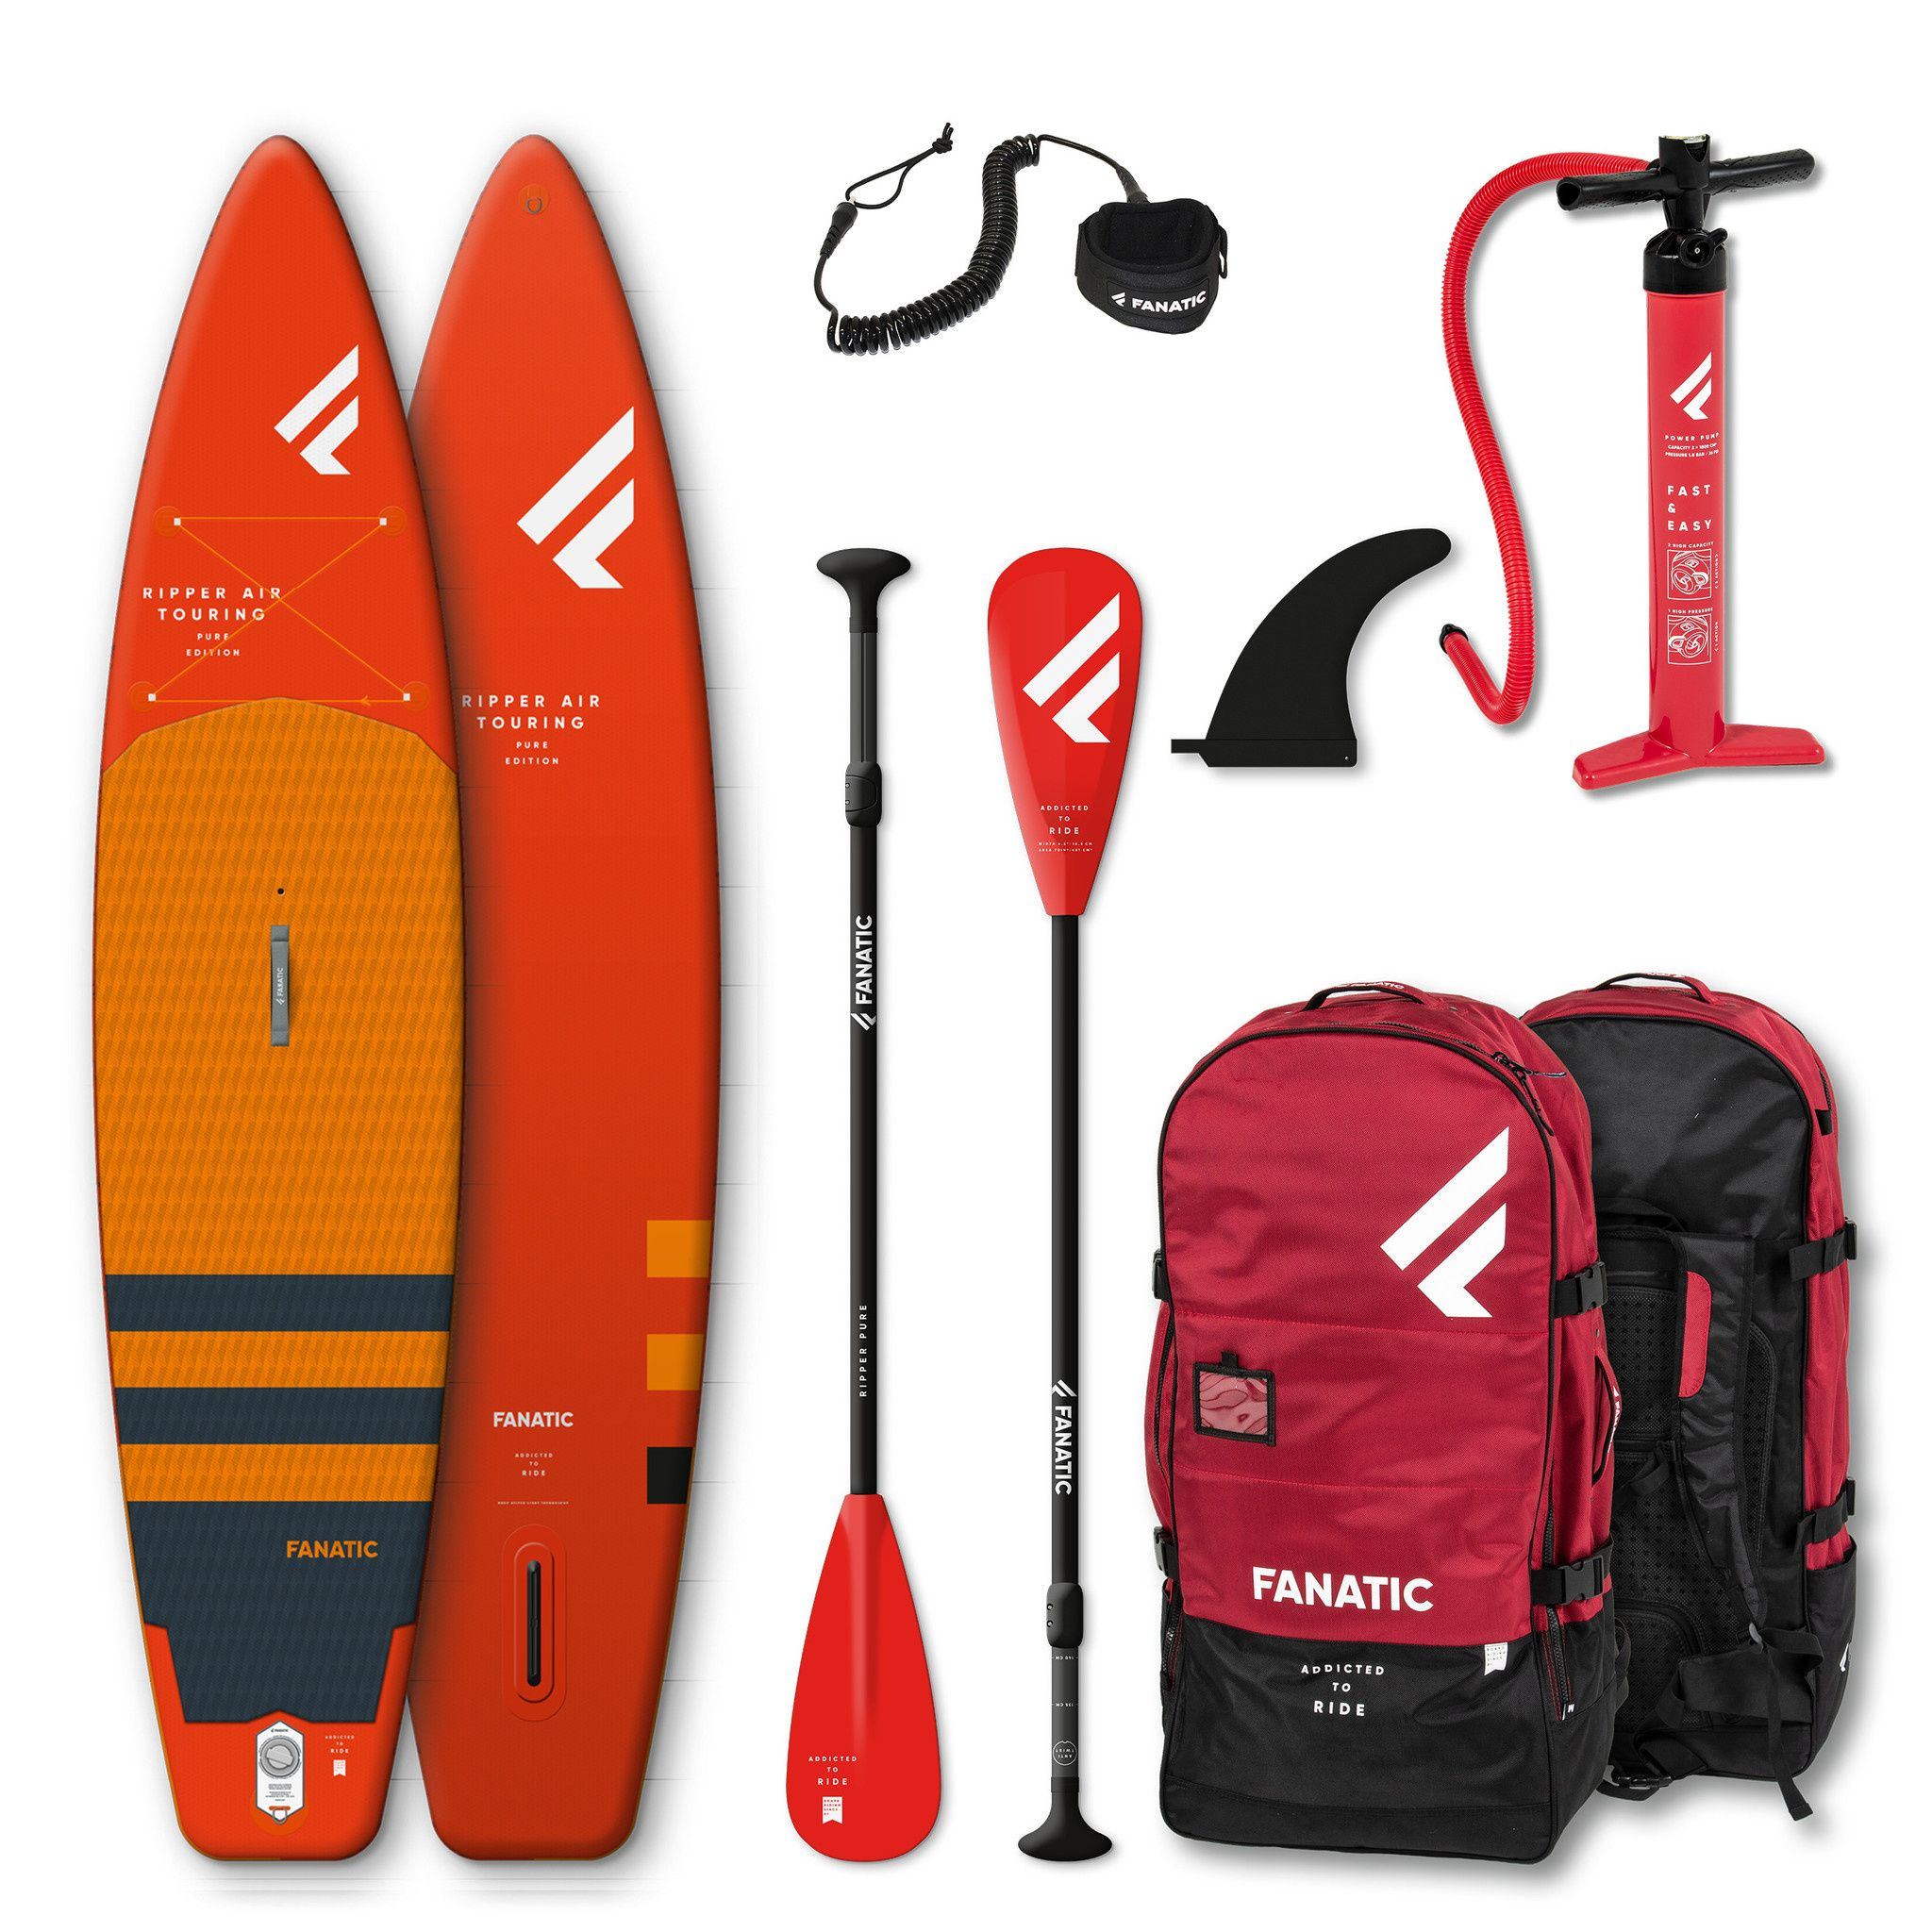 Fanatic Sup Package Ripper Air Touring